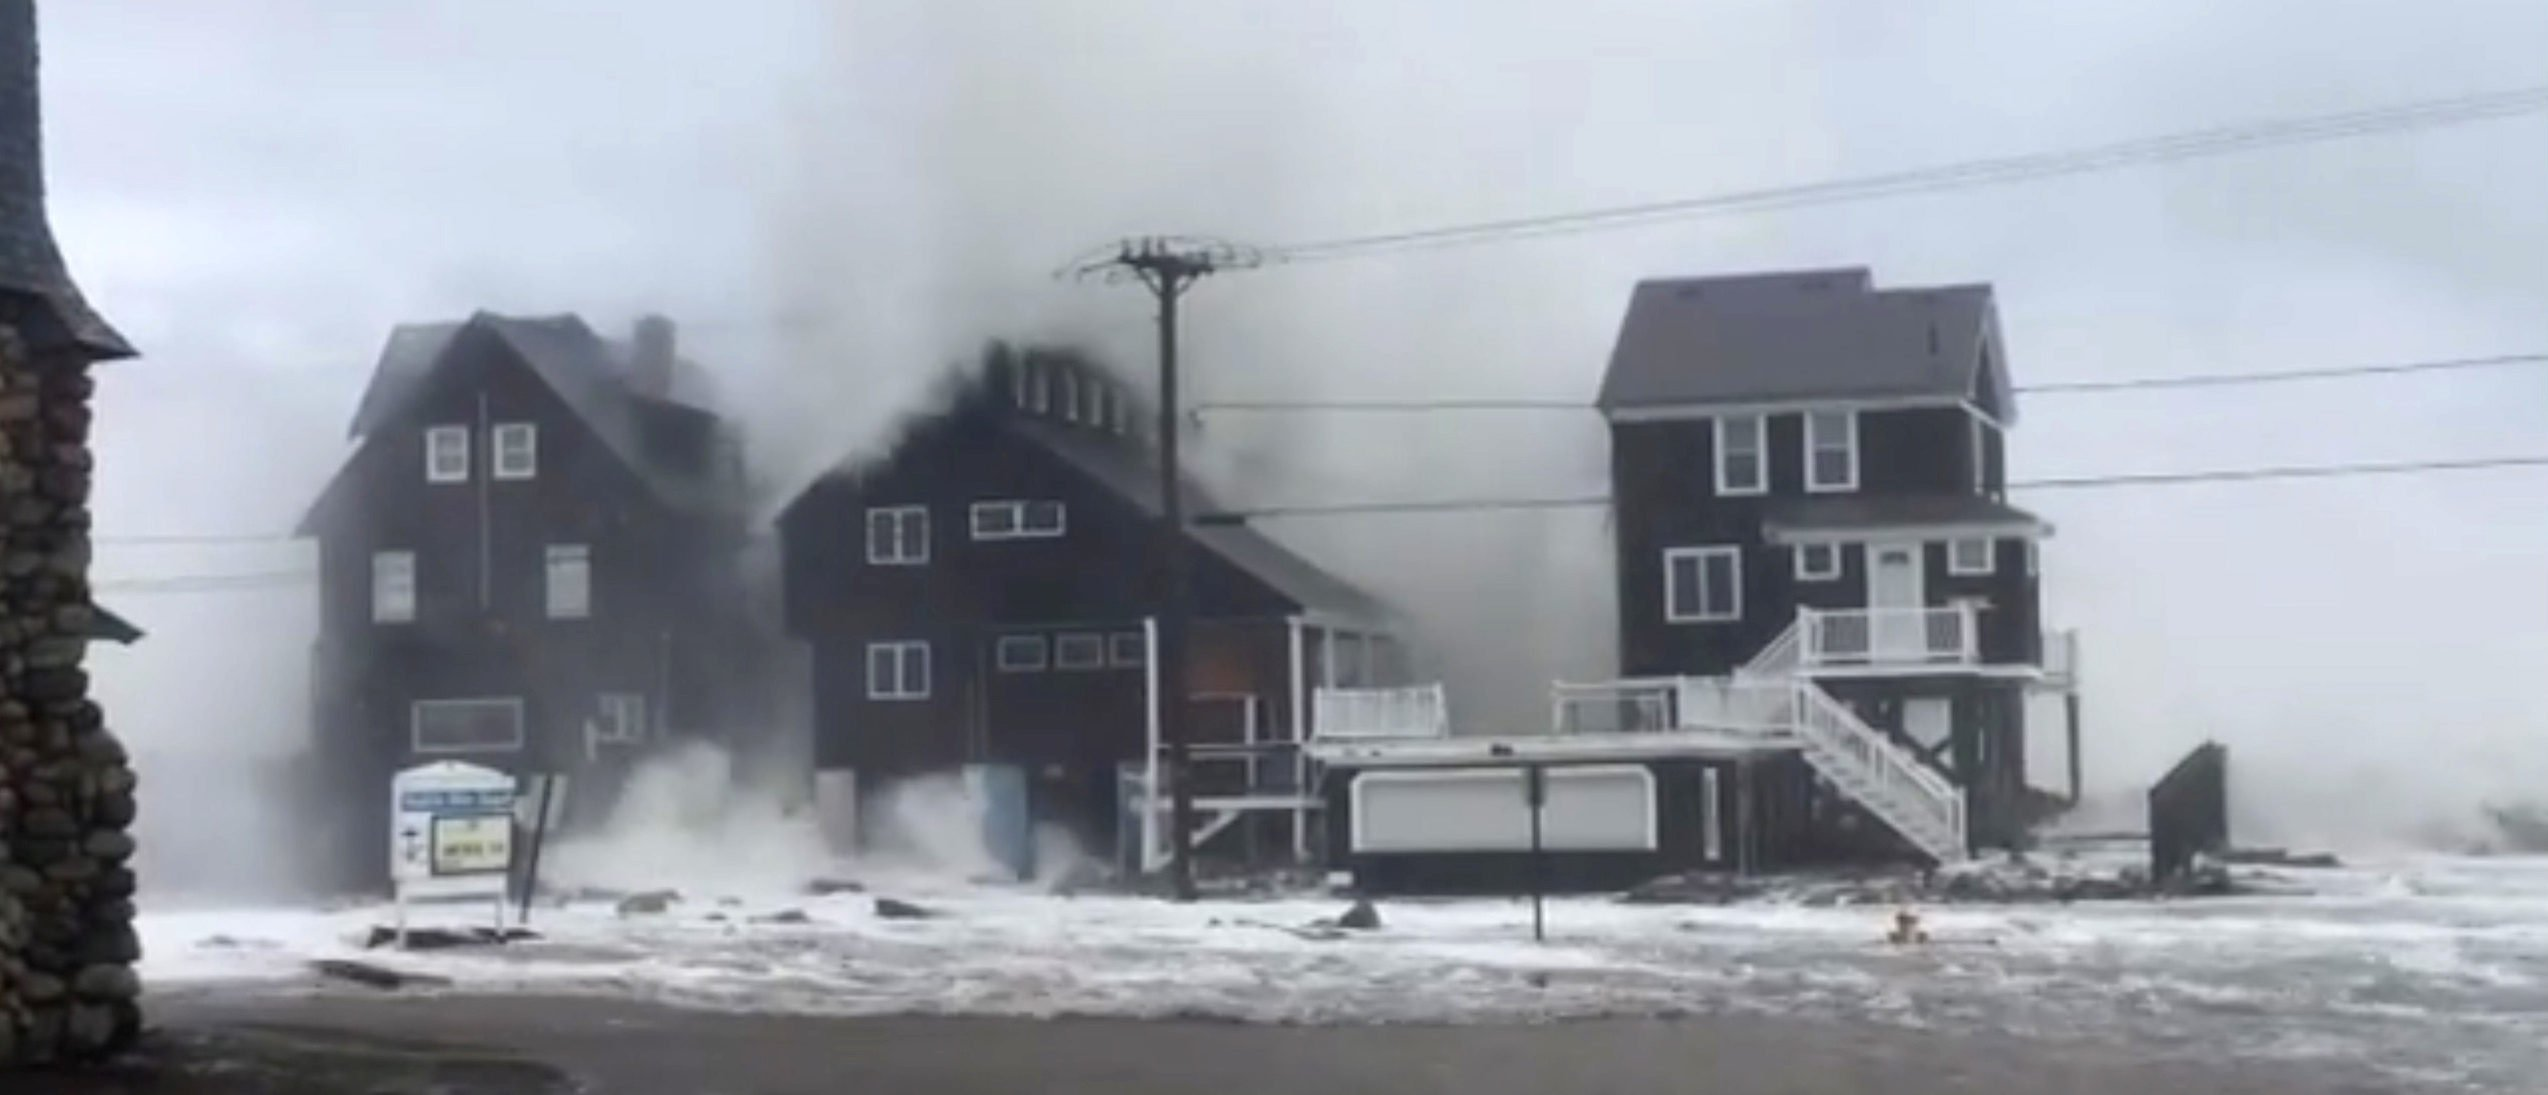 A wave crashes over a house after flooding and surge due to a winter nor'easter storm in Marshfield, Massachusetts, U.S. in this still image from video taken on March 3, 2018 obtained from social media. Instagram/JAMES KUKSTIS/via REUTERS